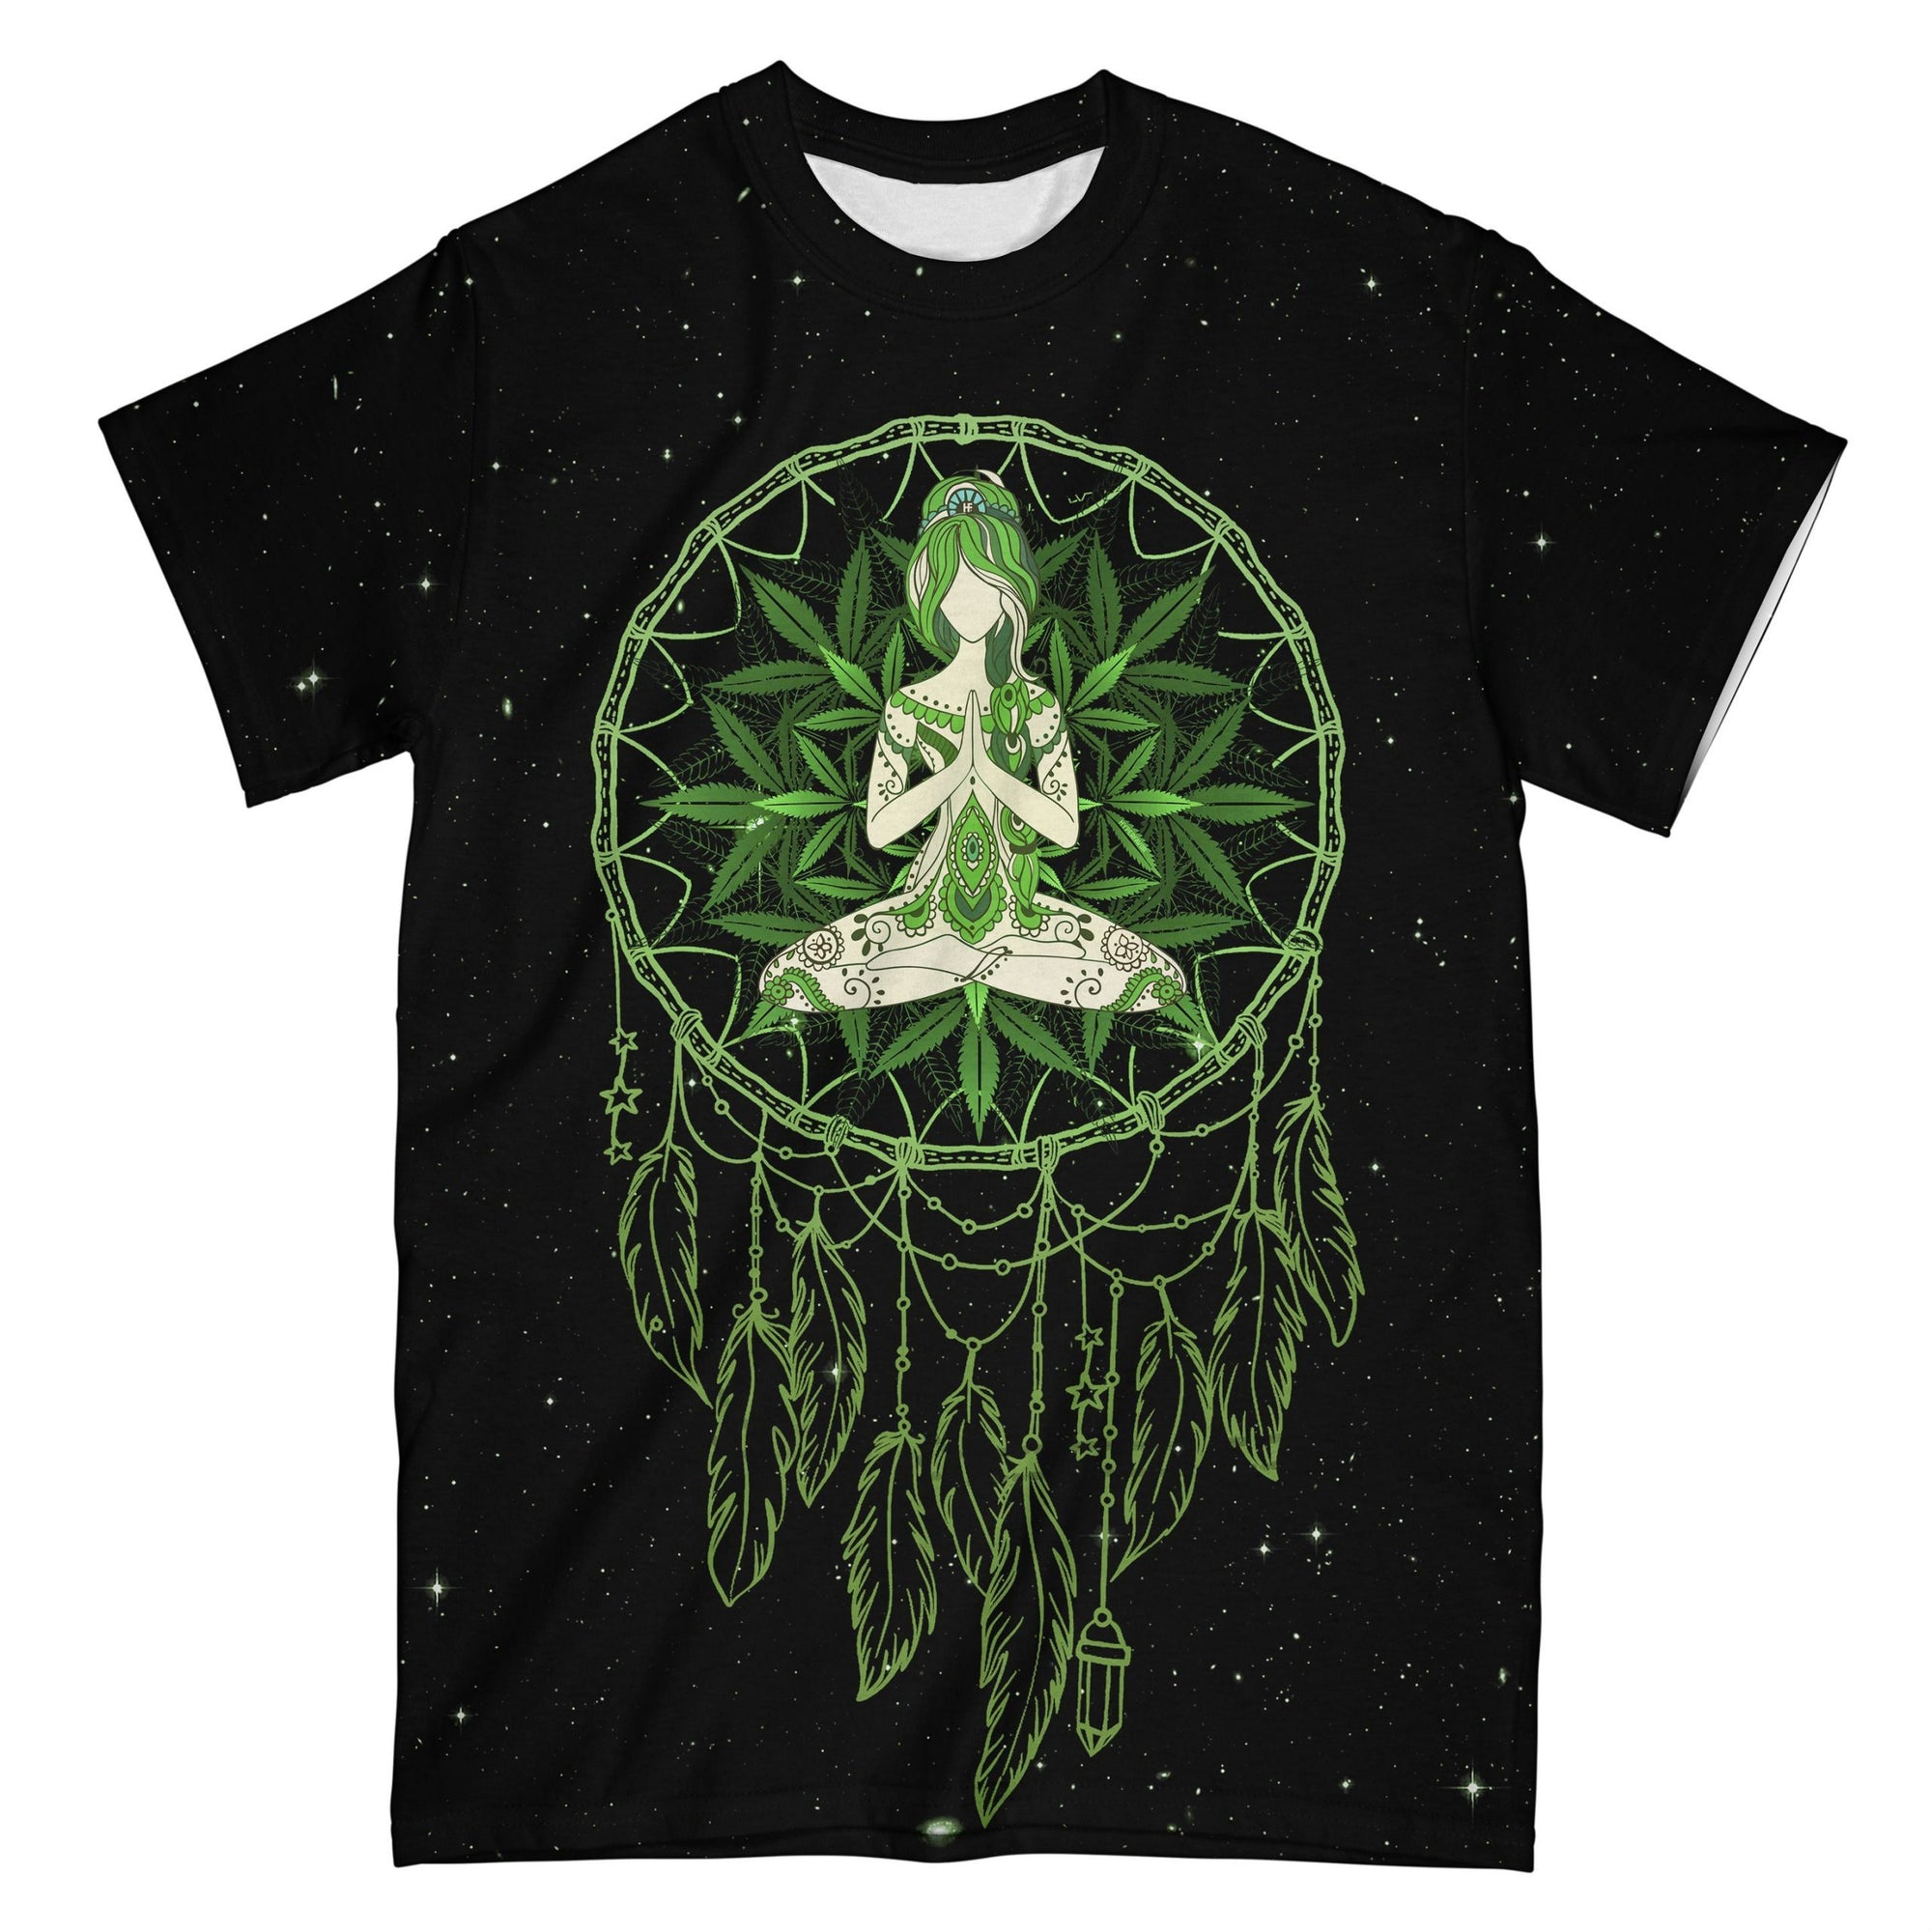 Yoga Weed Dreamcatcher Green EZ07 0604 All Over T-Shirt